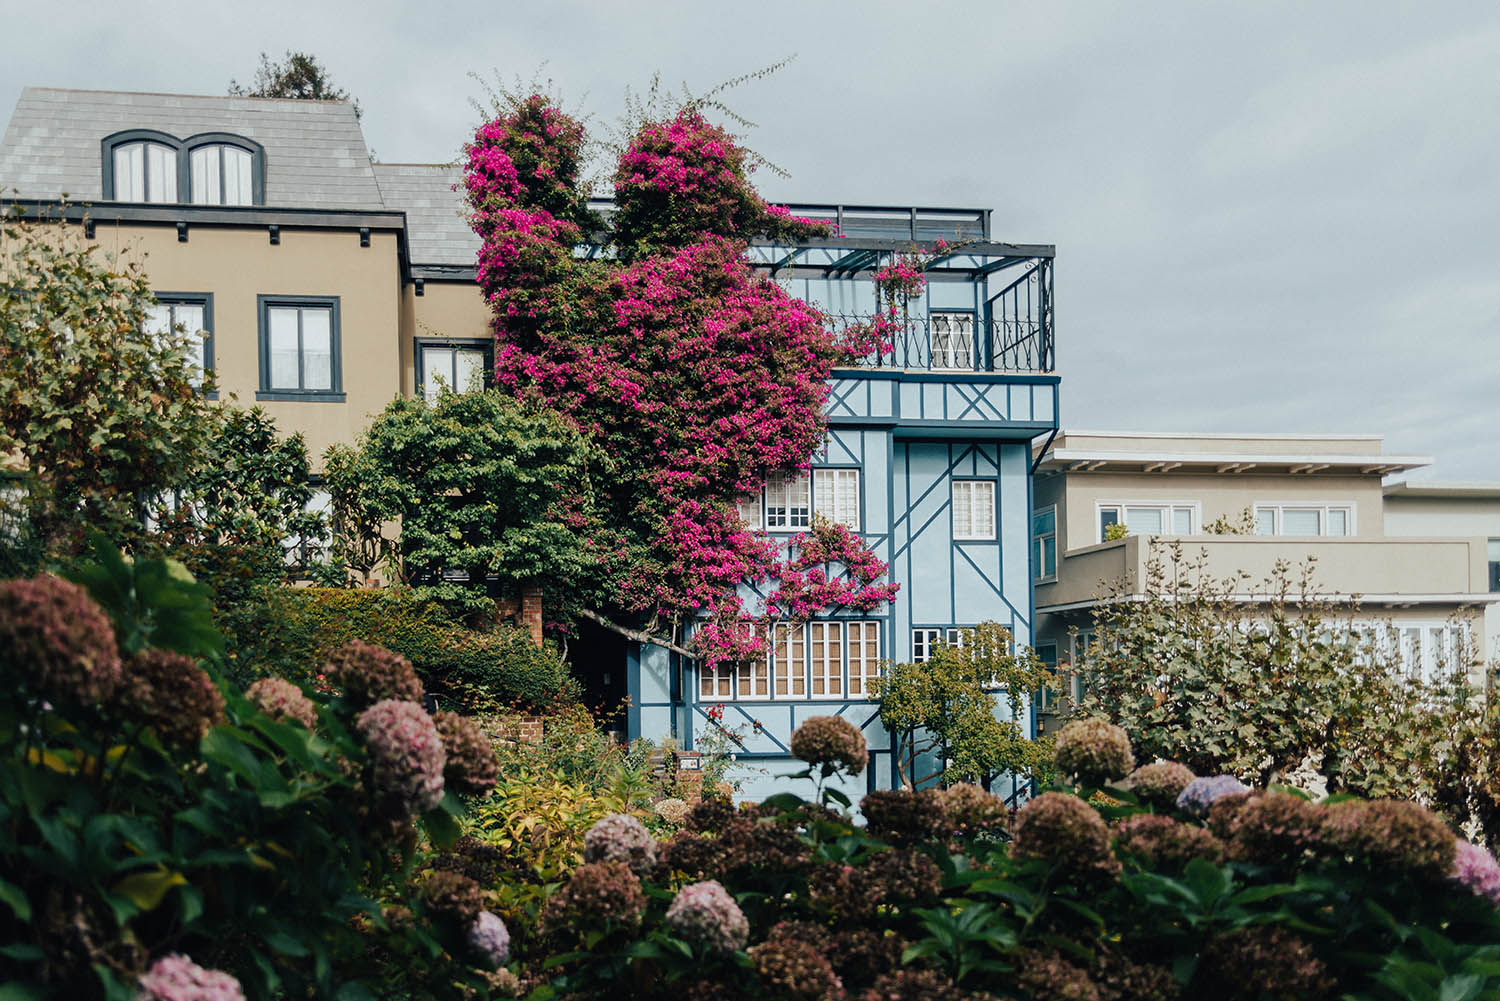 Lombard Street - Flowers & Colorful House - Instagram-Worthy Spots in San Francisco